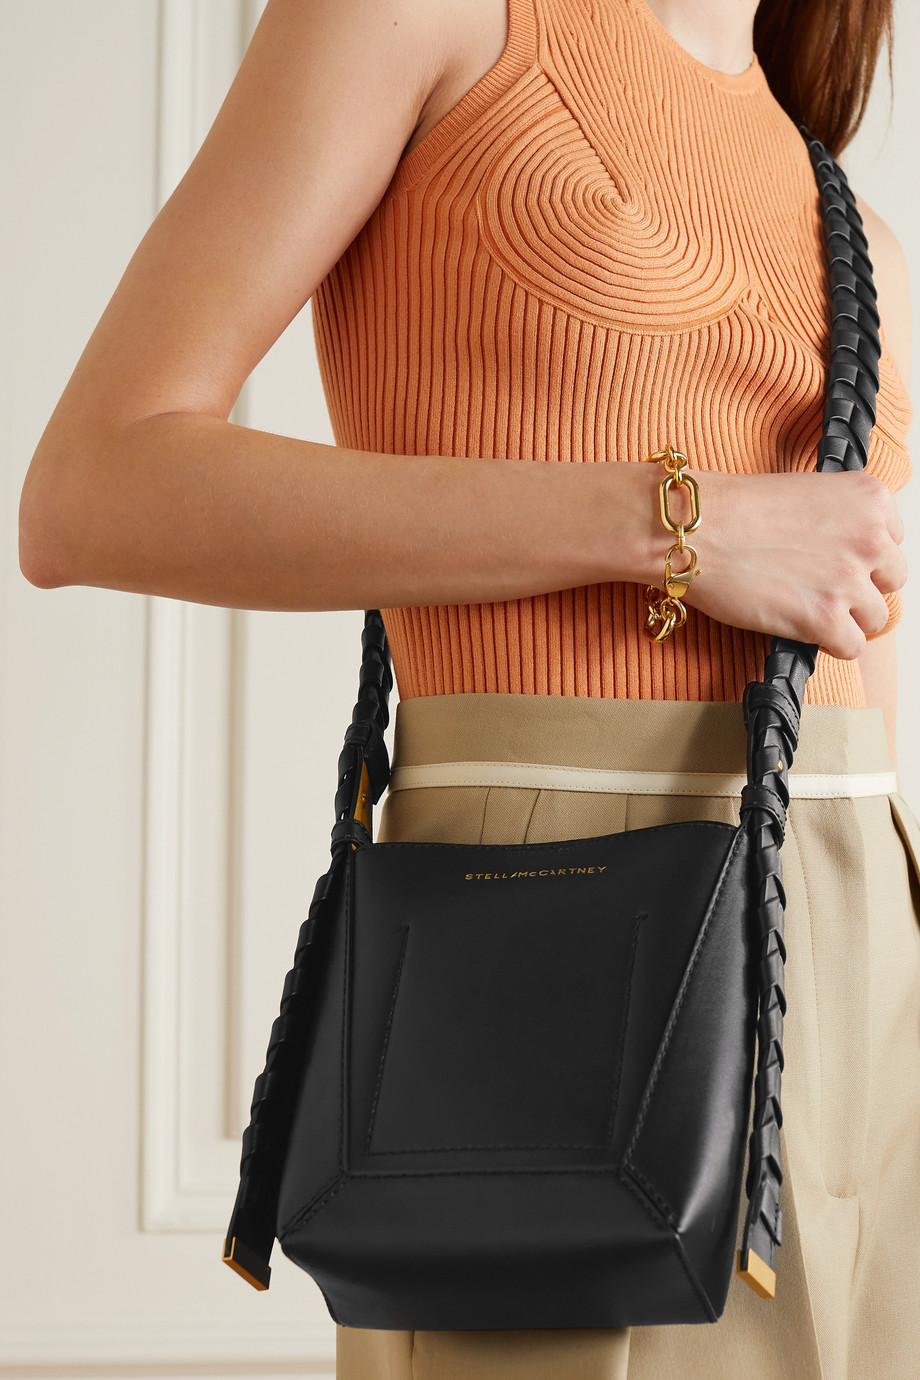 Stella McCartney Eco Soft braided vegetarian leather shoulder bag